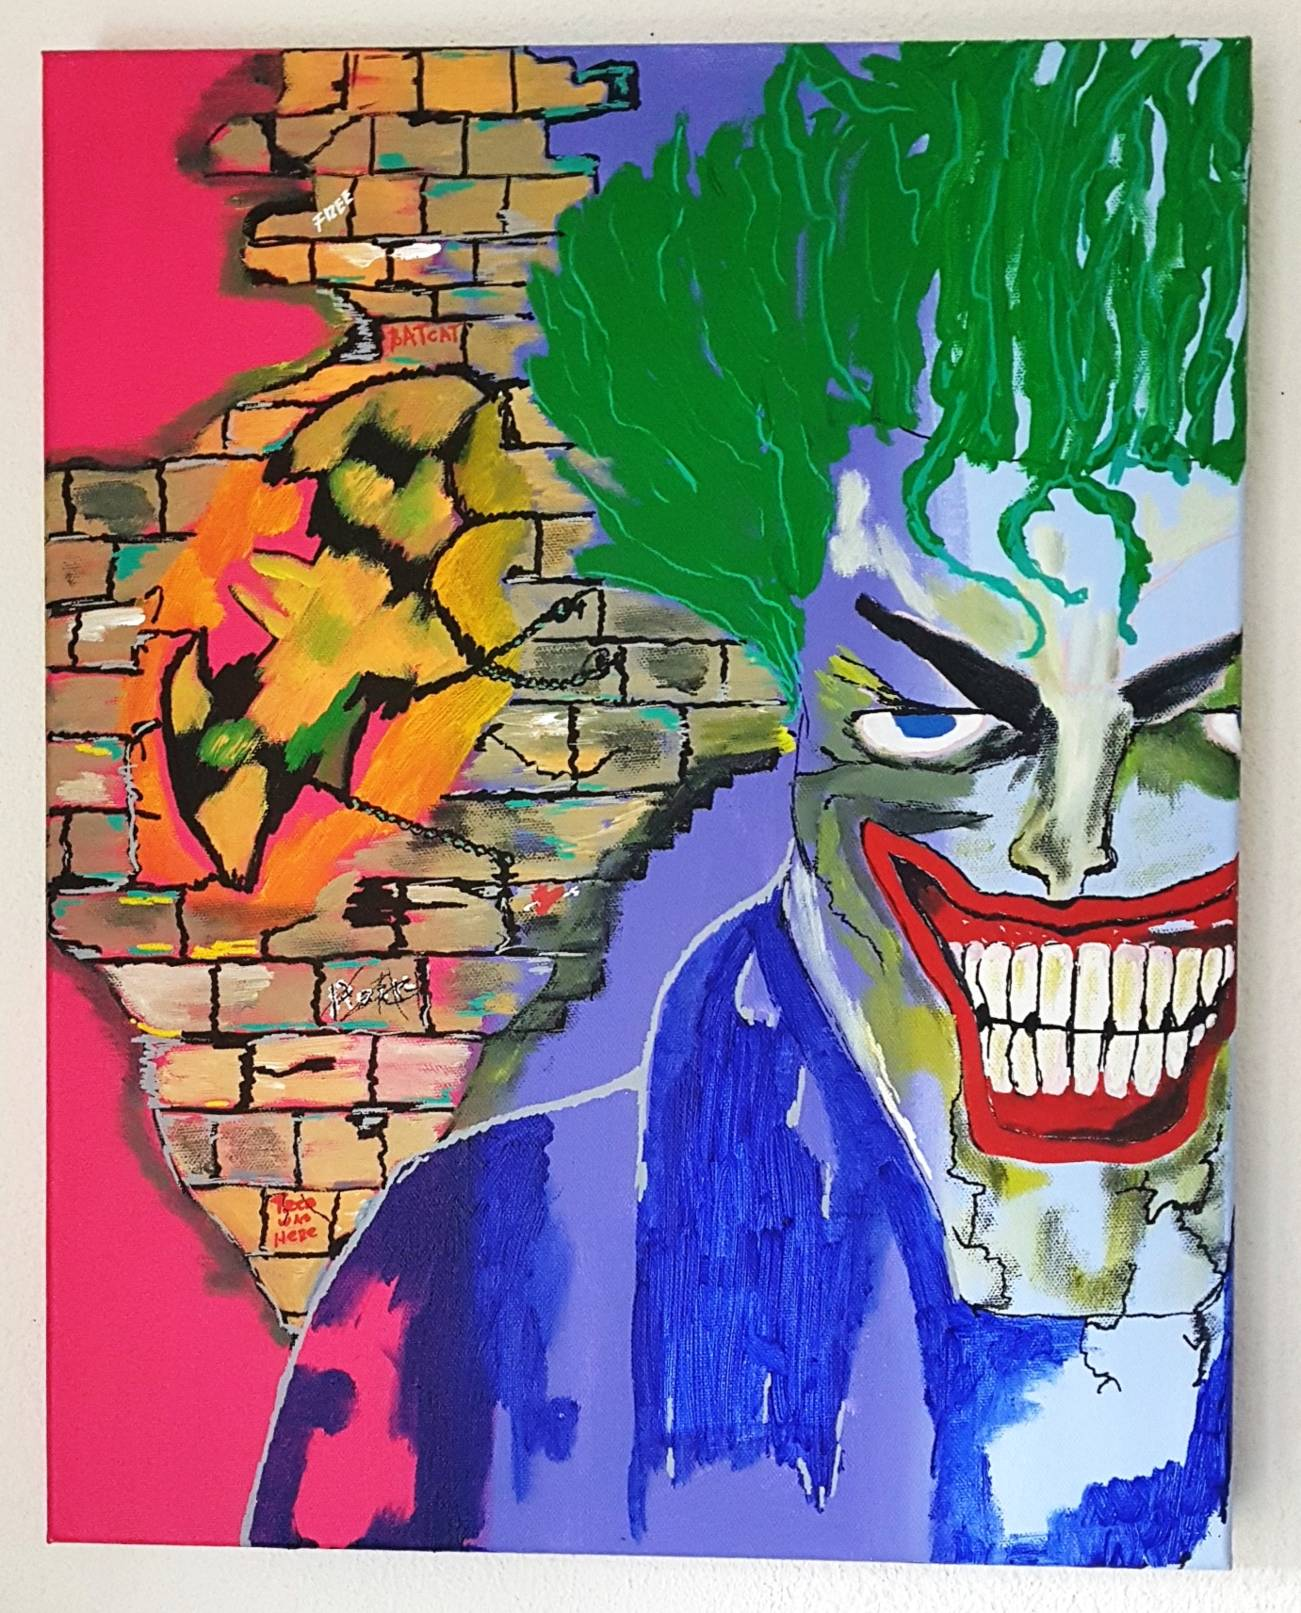 BATMAN THE JOKER 40X50X4 COMICS COLOUR PAINTING INSTAGRAM GOOGLE ART